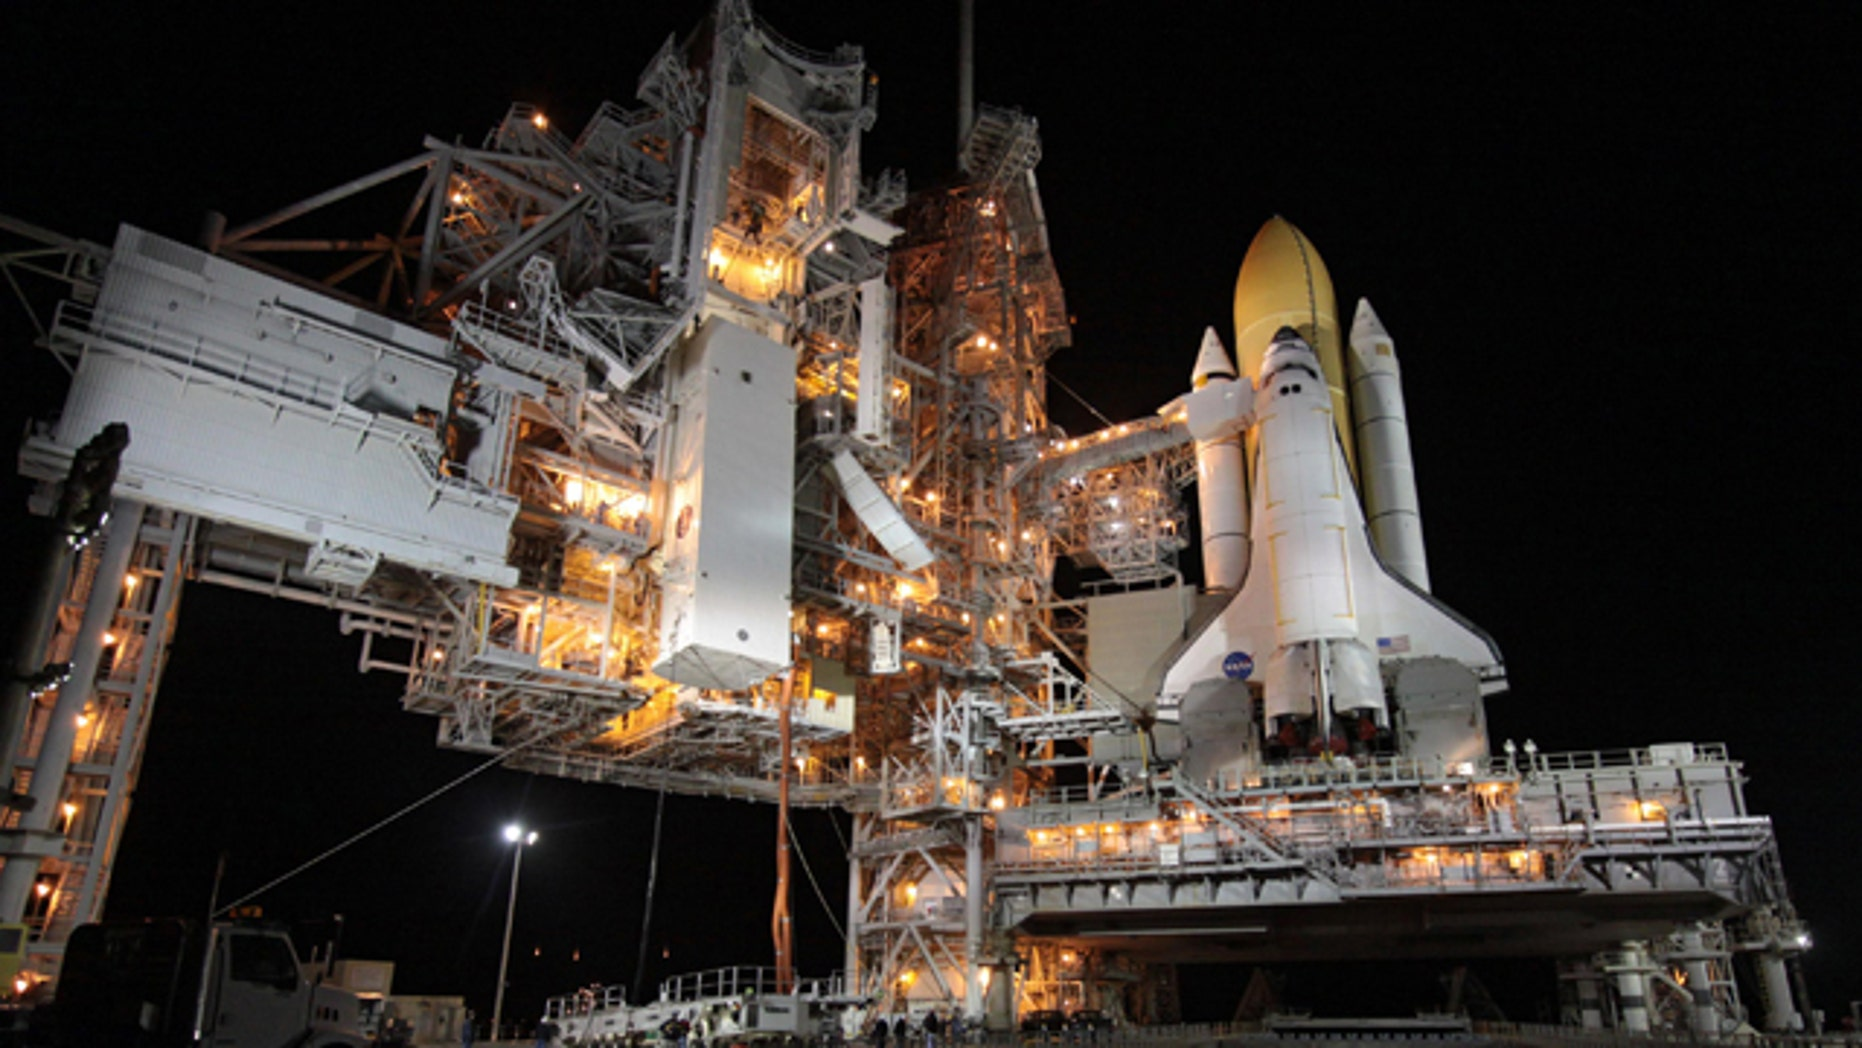 A transportation canister containing Tranquility, the International Space Station's Node 3, is lifted toward Space Shuttle Endeavour which rests at Launch Pad 39A.